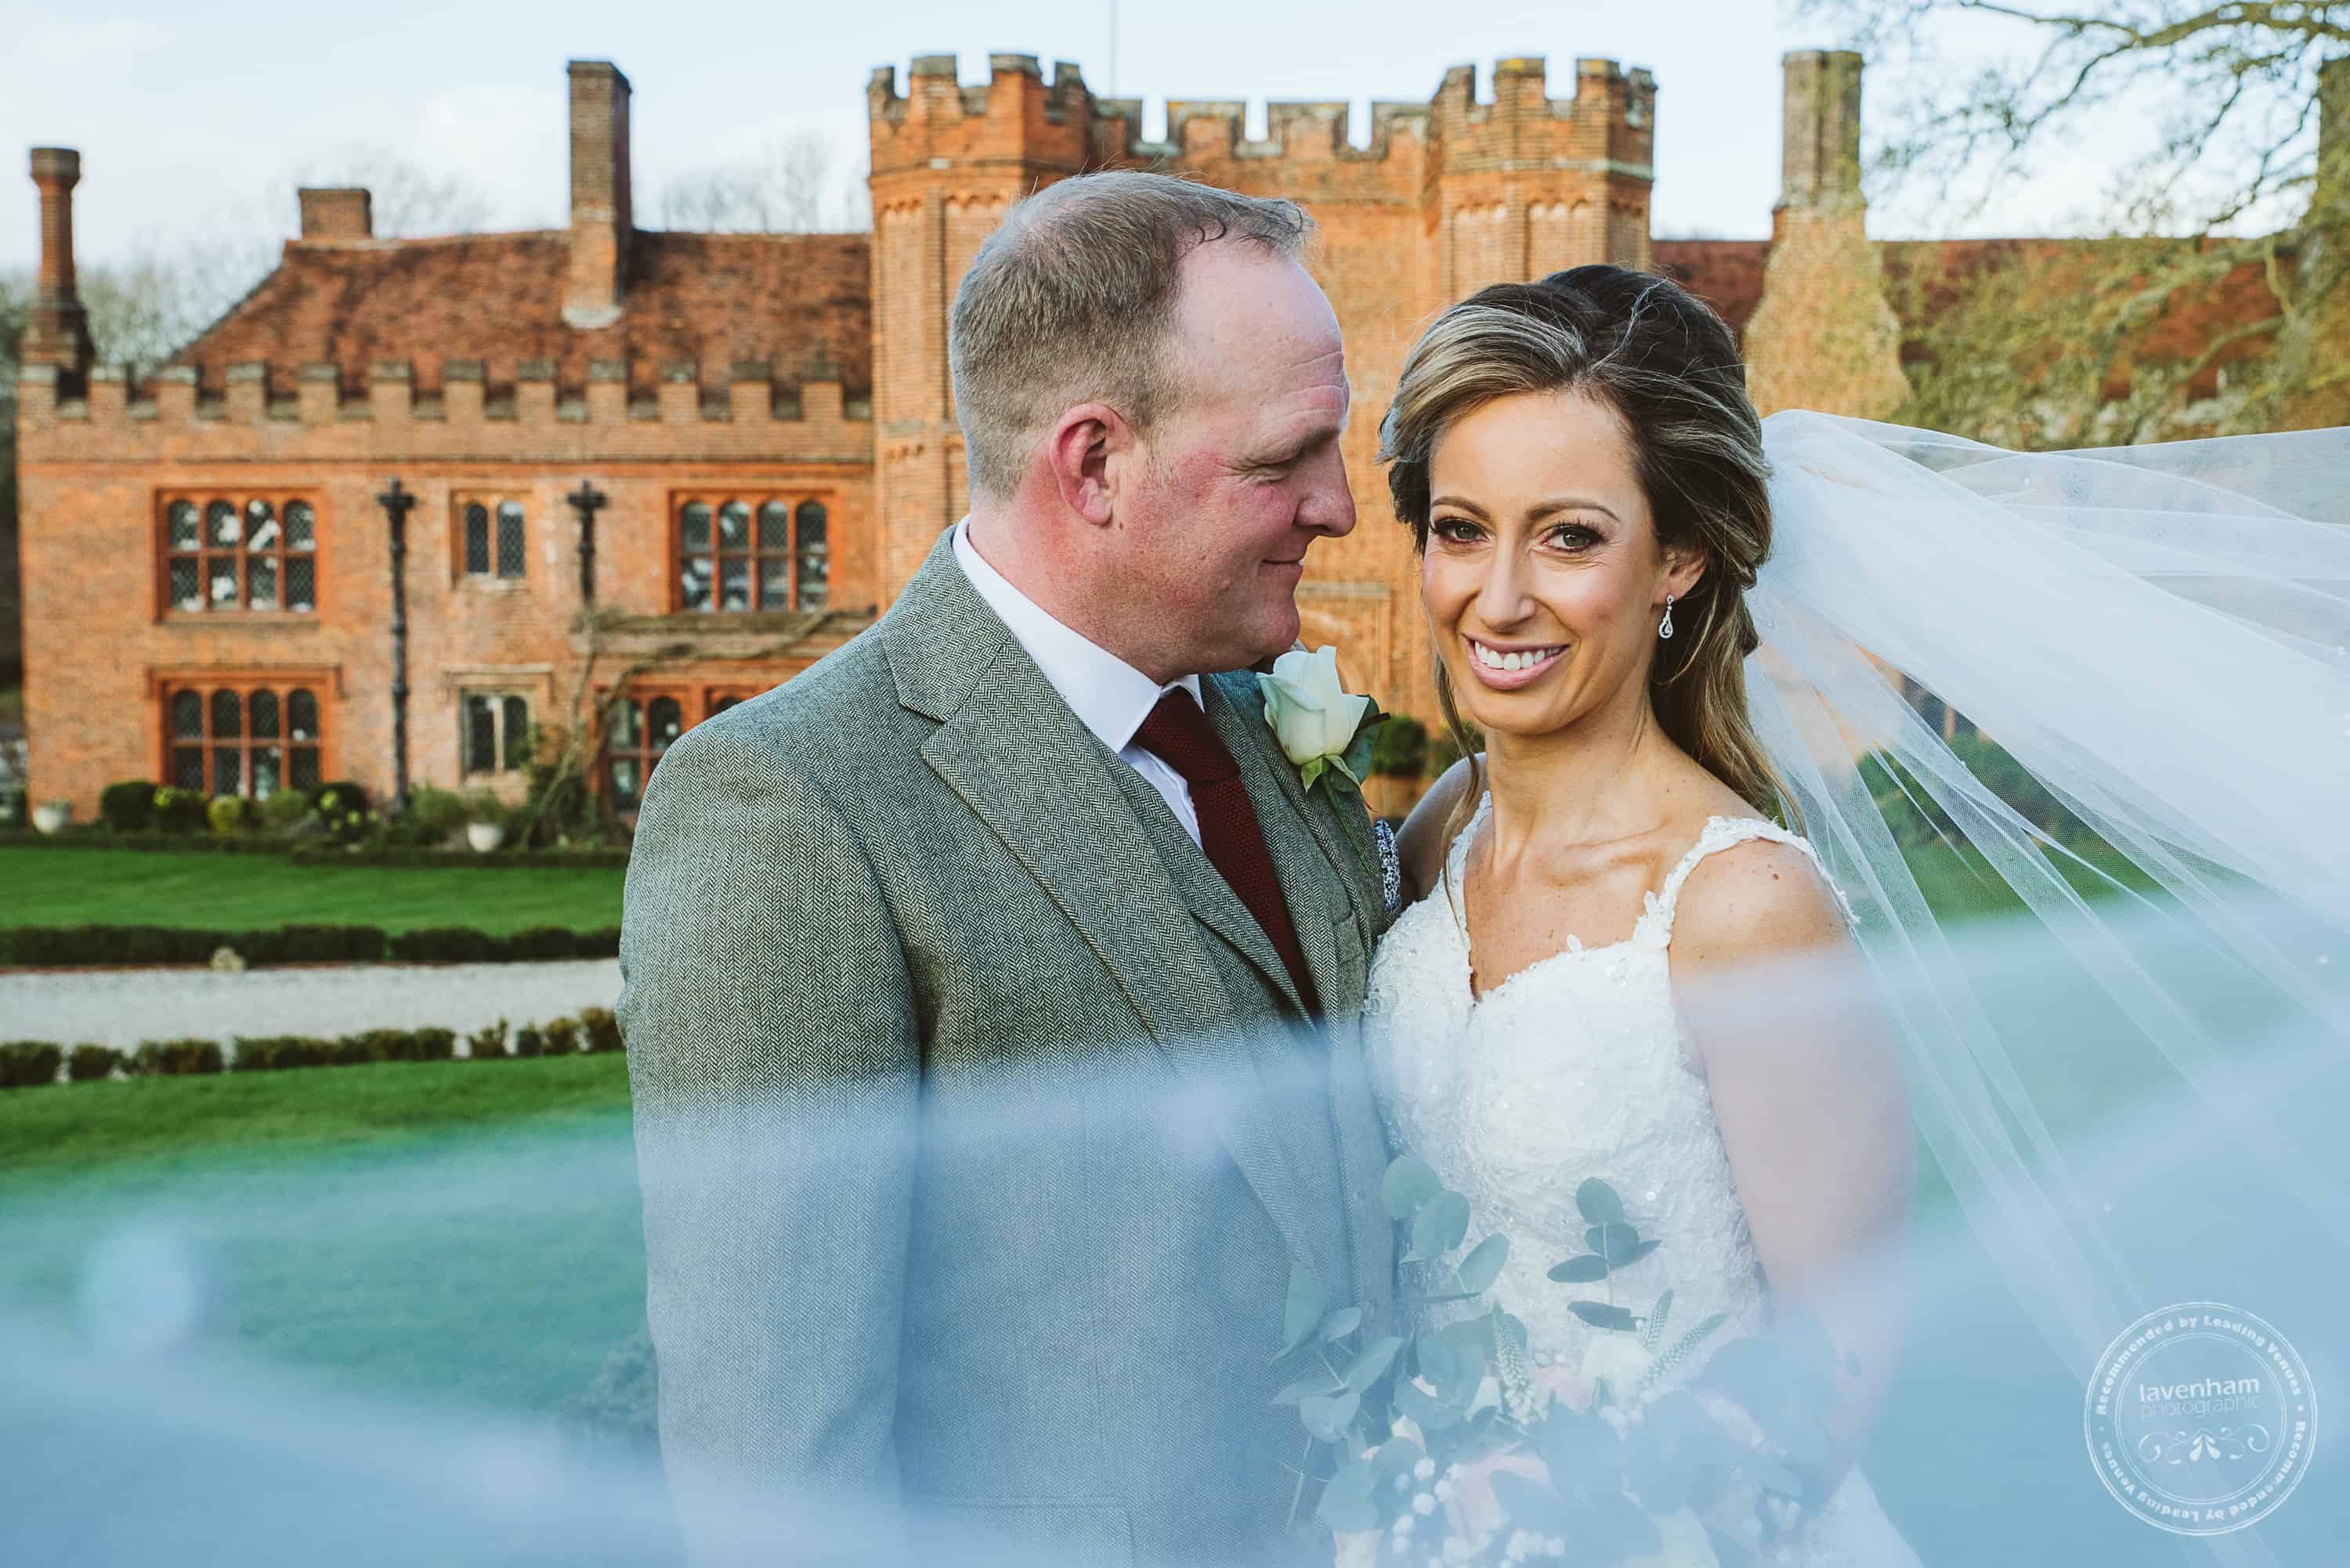 010220 Leez Priory Wedding Photographer 064